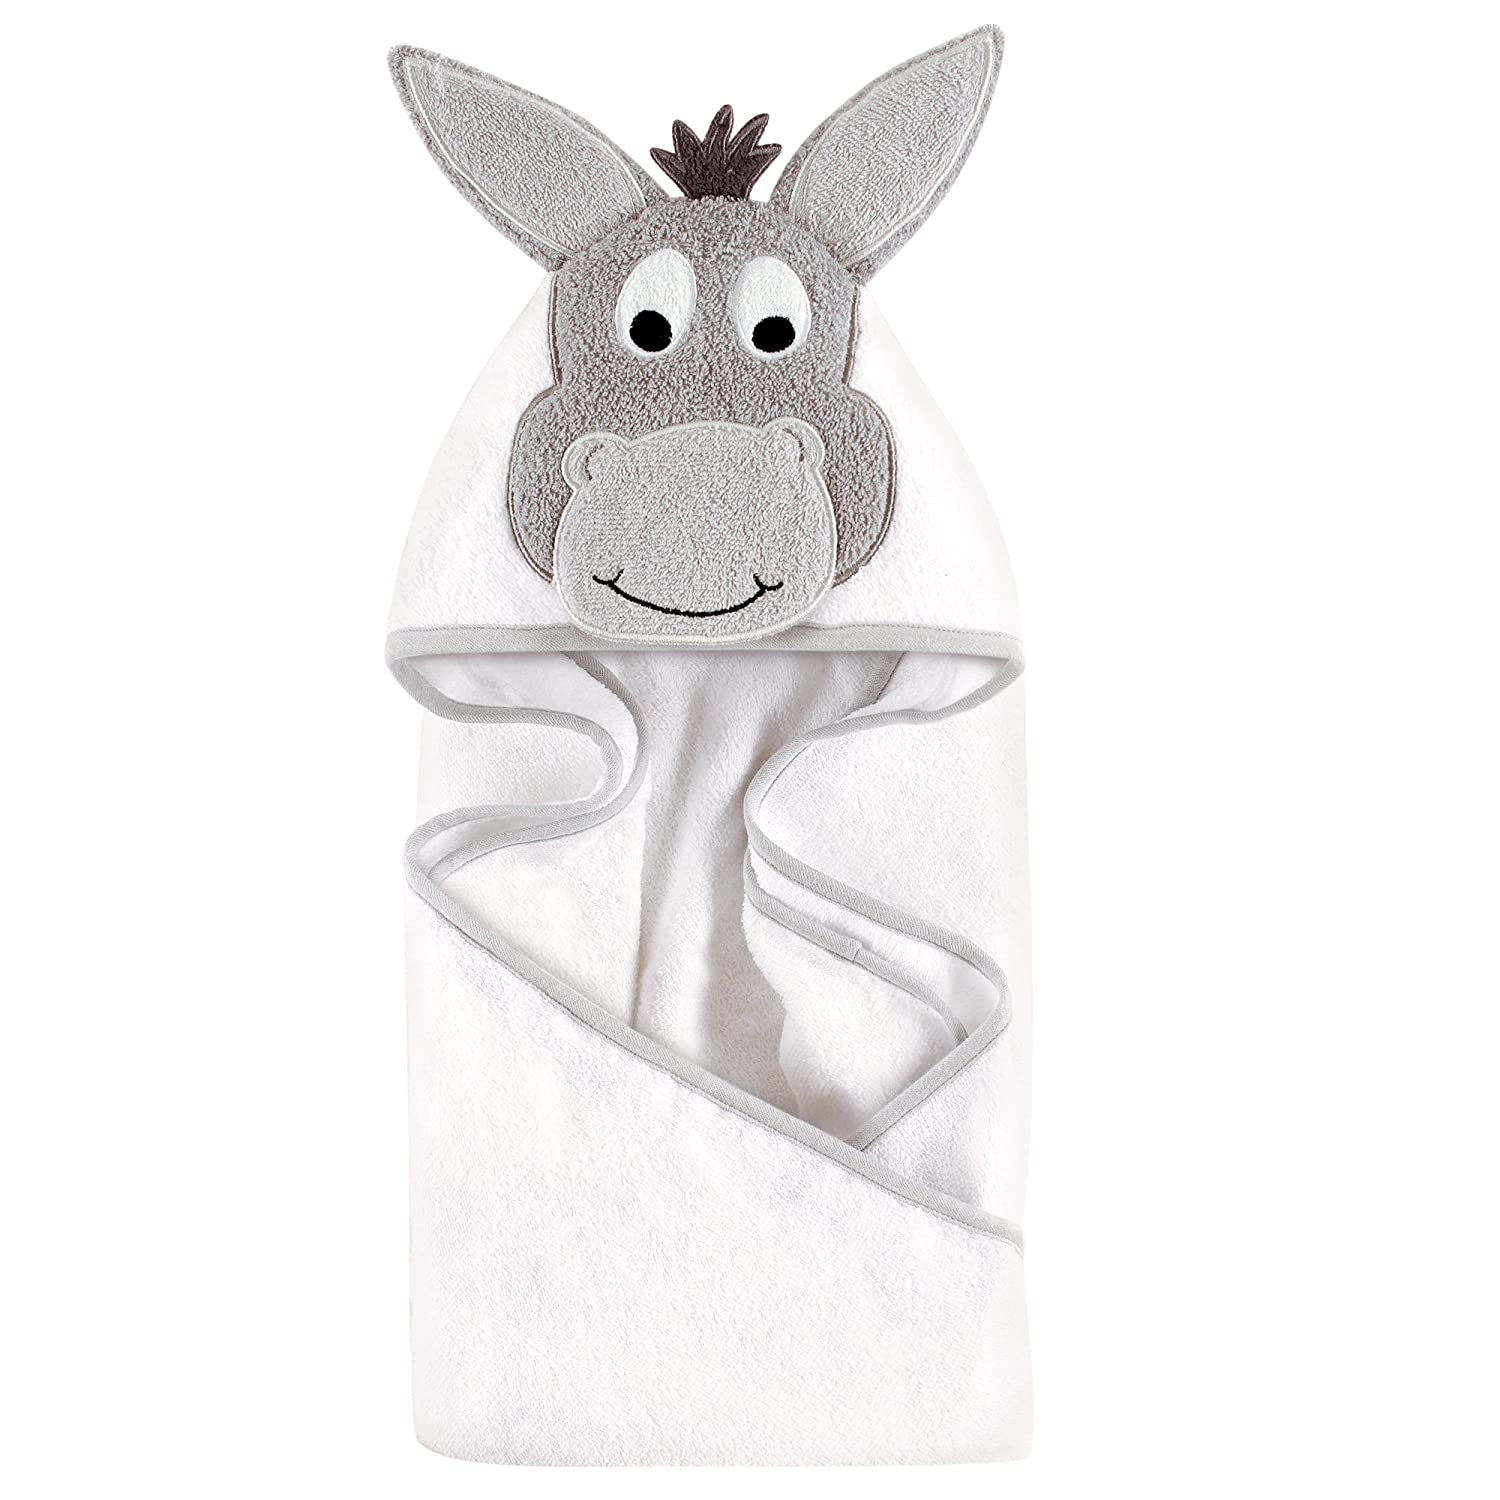 Hudson Baby Animal Face Hooded Towel, Nerdy Fox 57053_NerdyFox